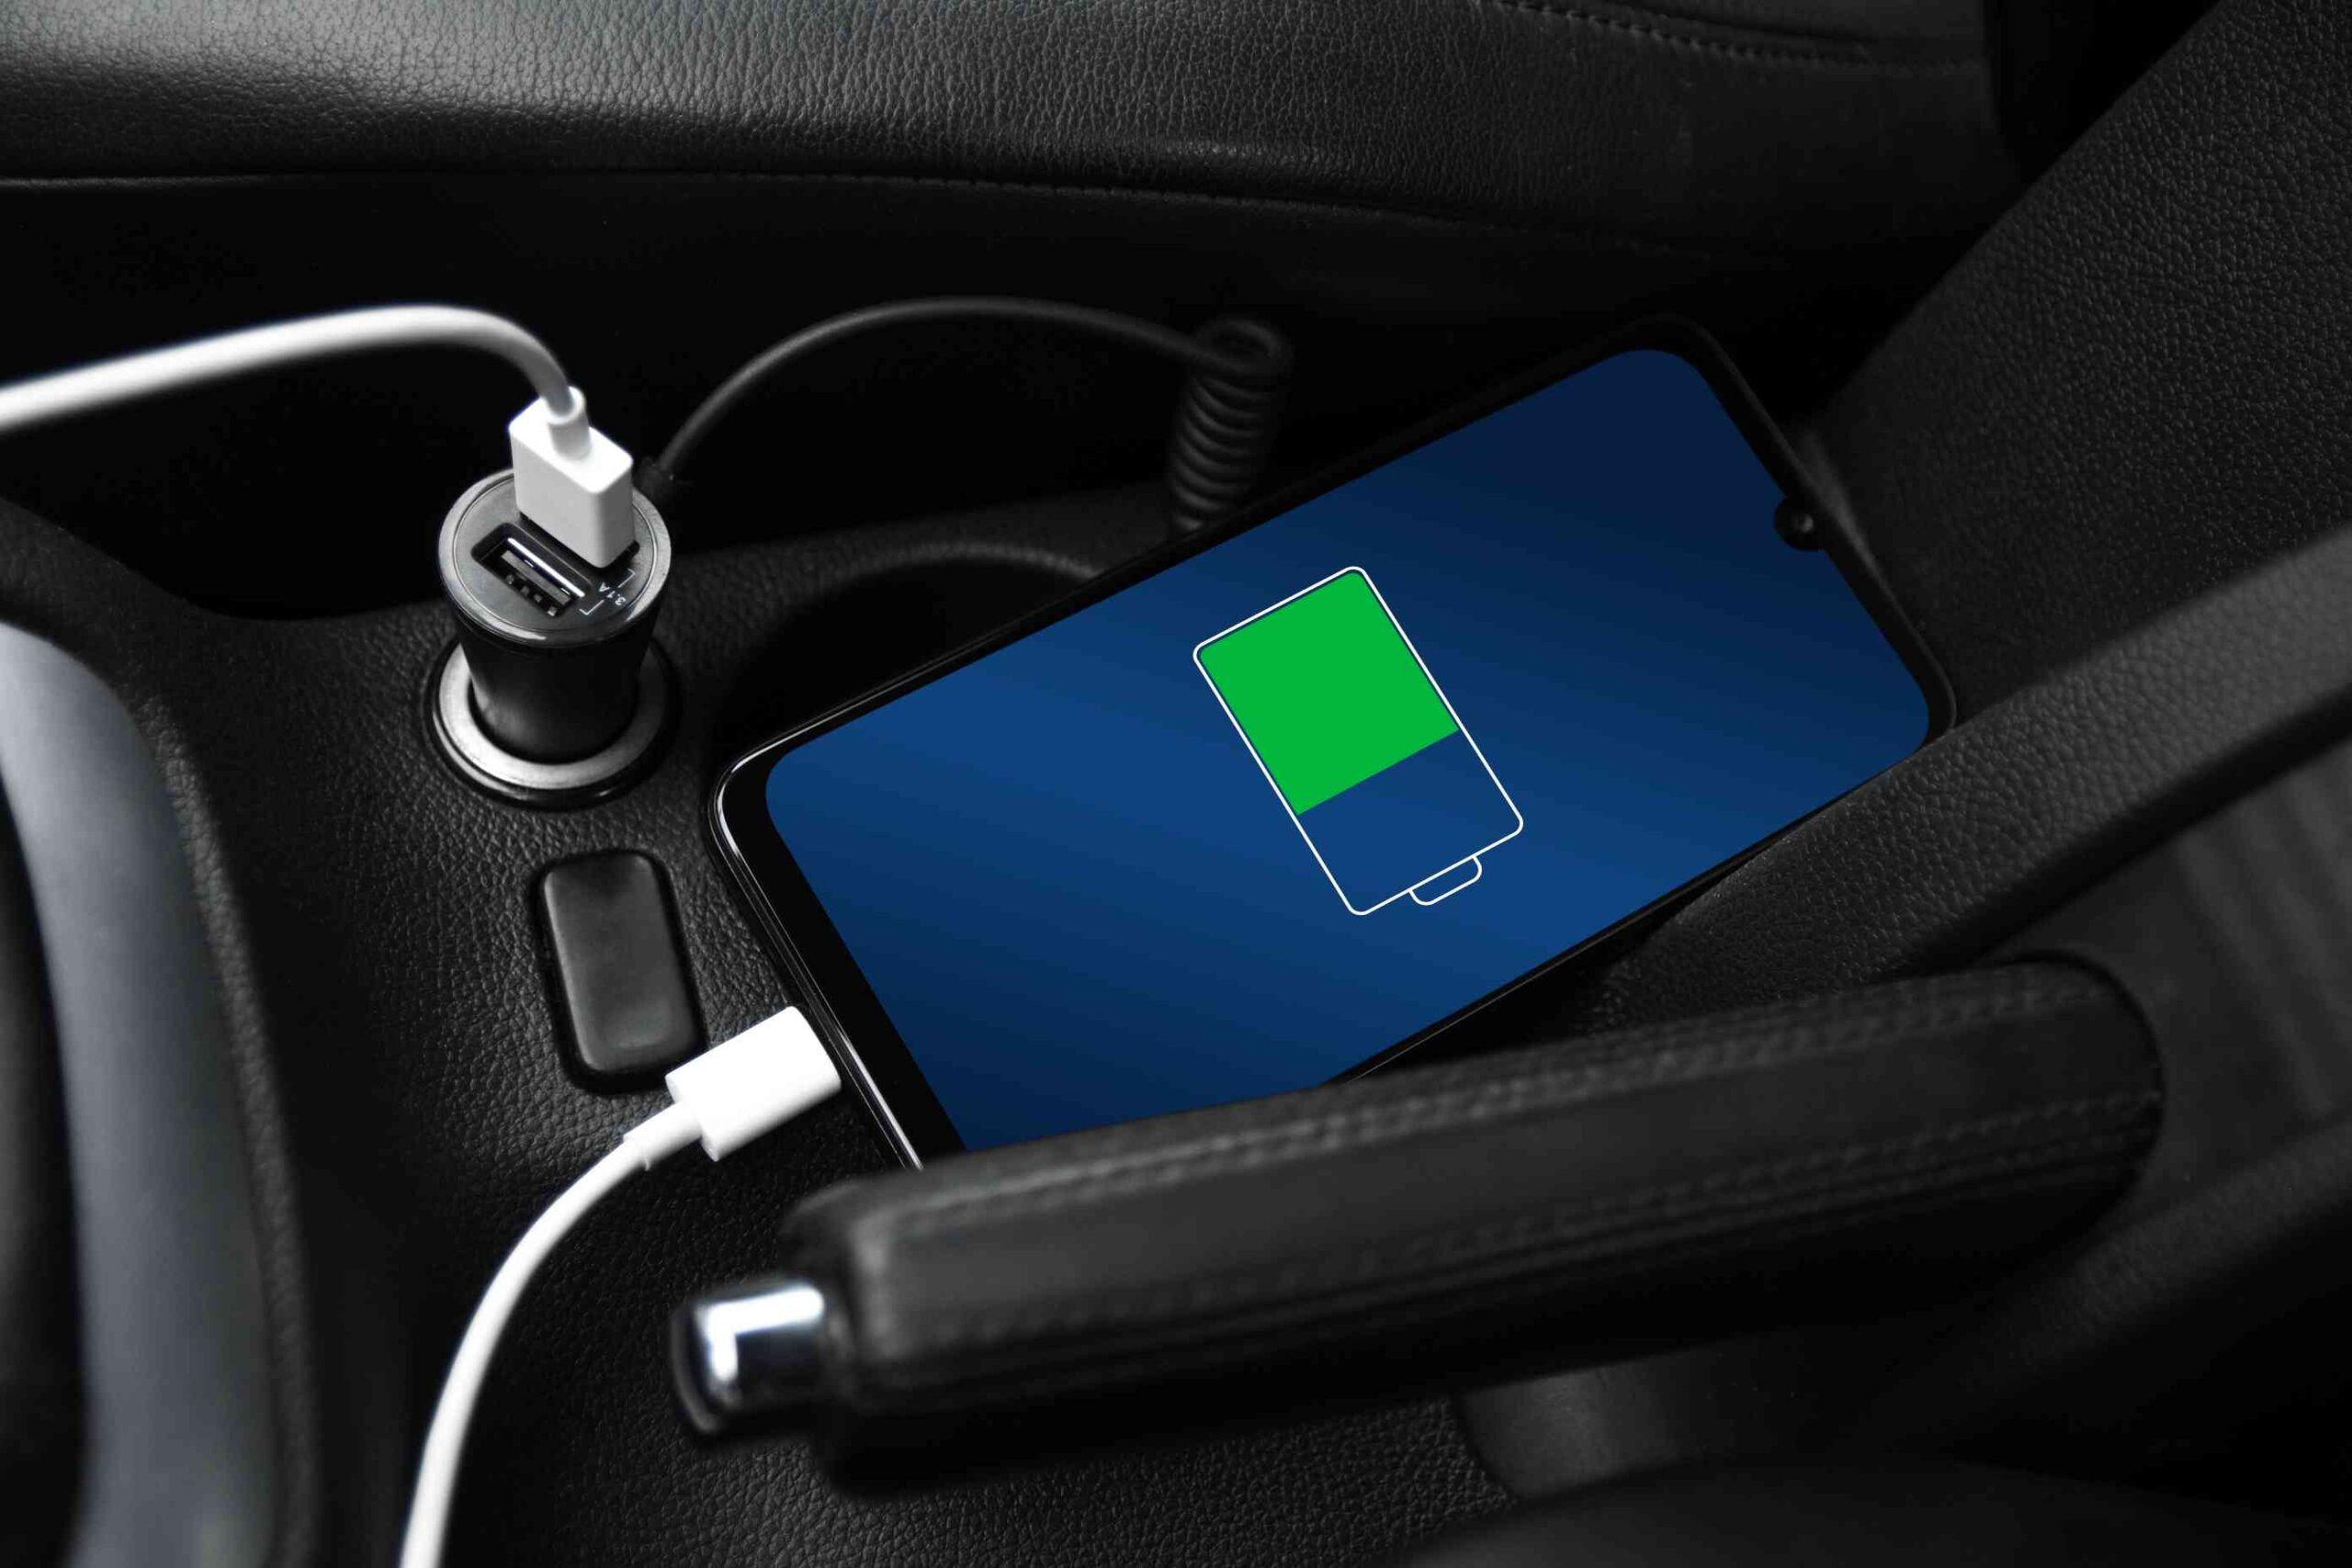 Phone charger and cable for car